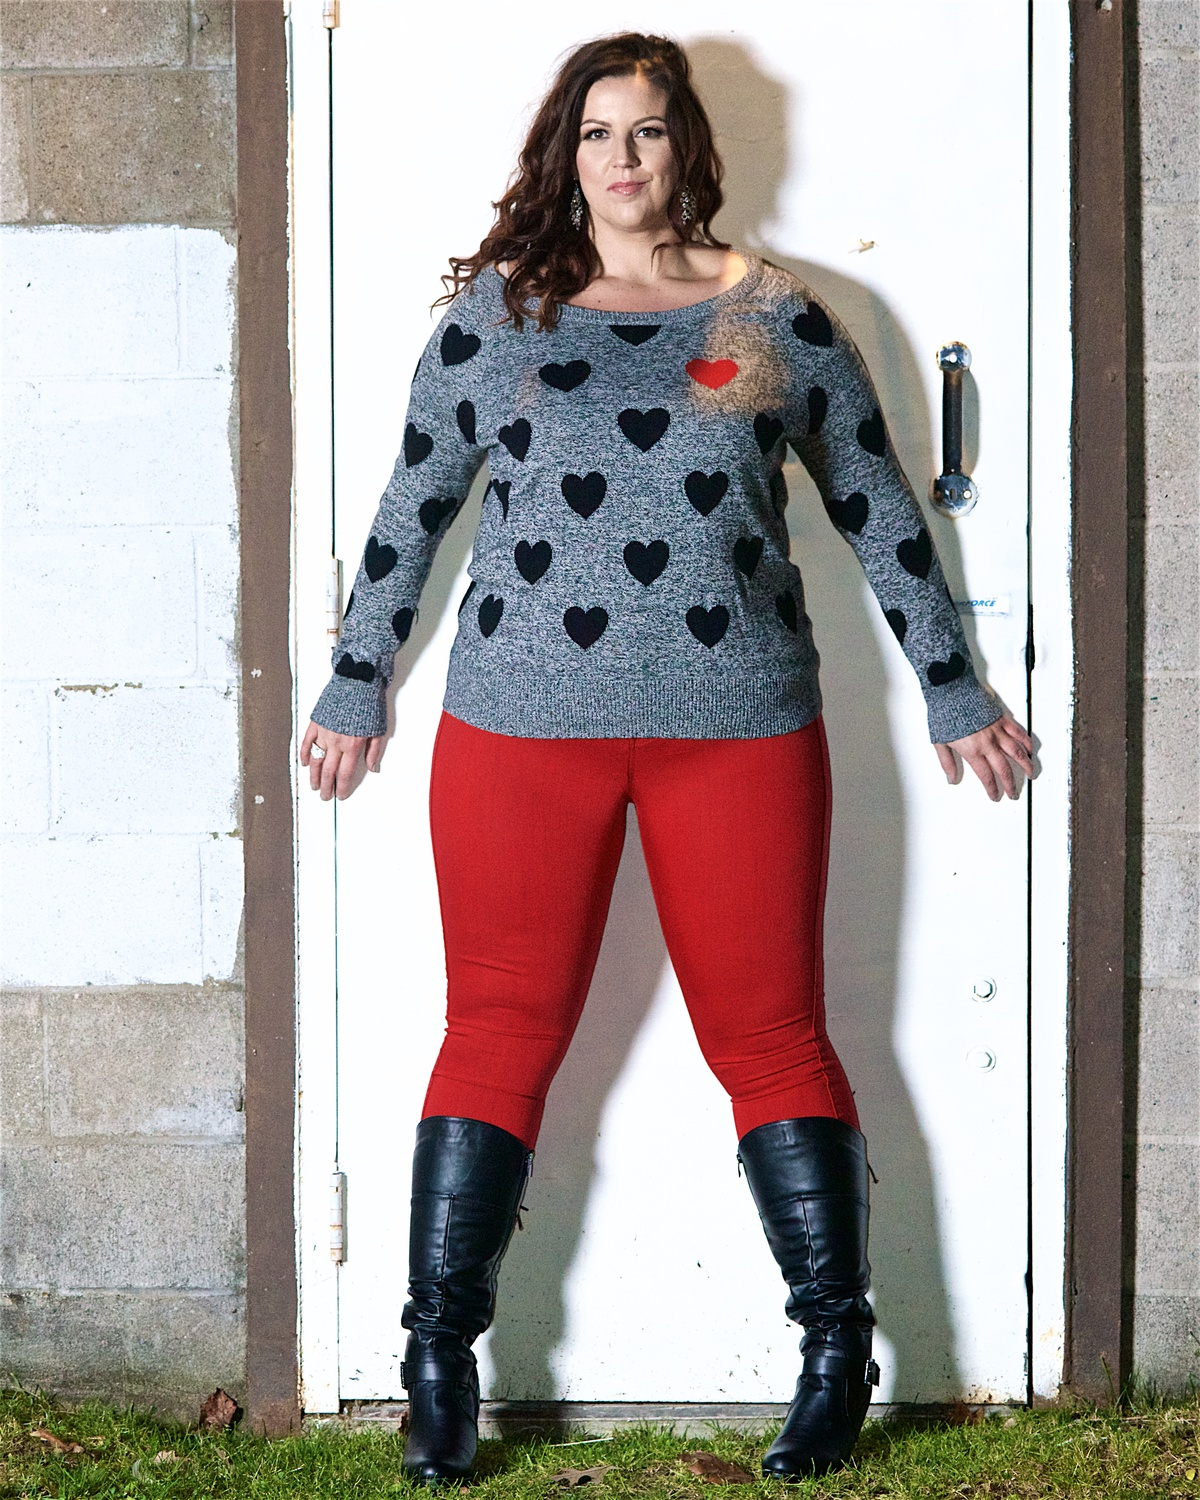 sarah_talor_plus_size_fashion_plus_size_blogger_torrid_plus_size_sweater_hearts_stars_miss_plus_canada_plus_size_model_3